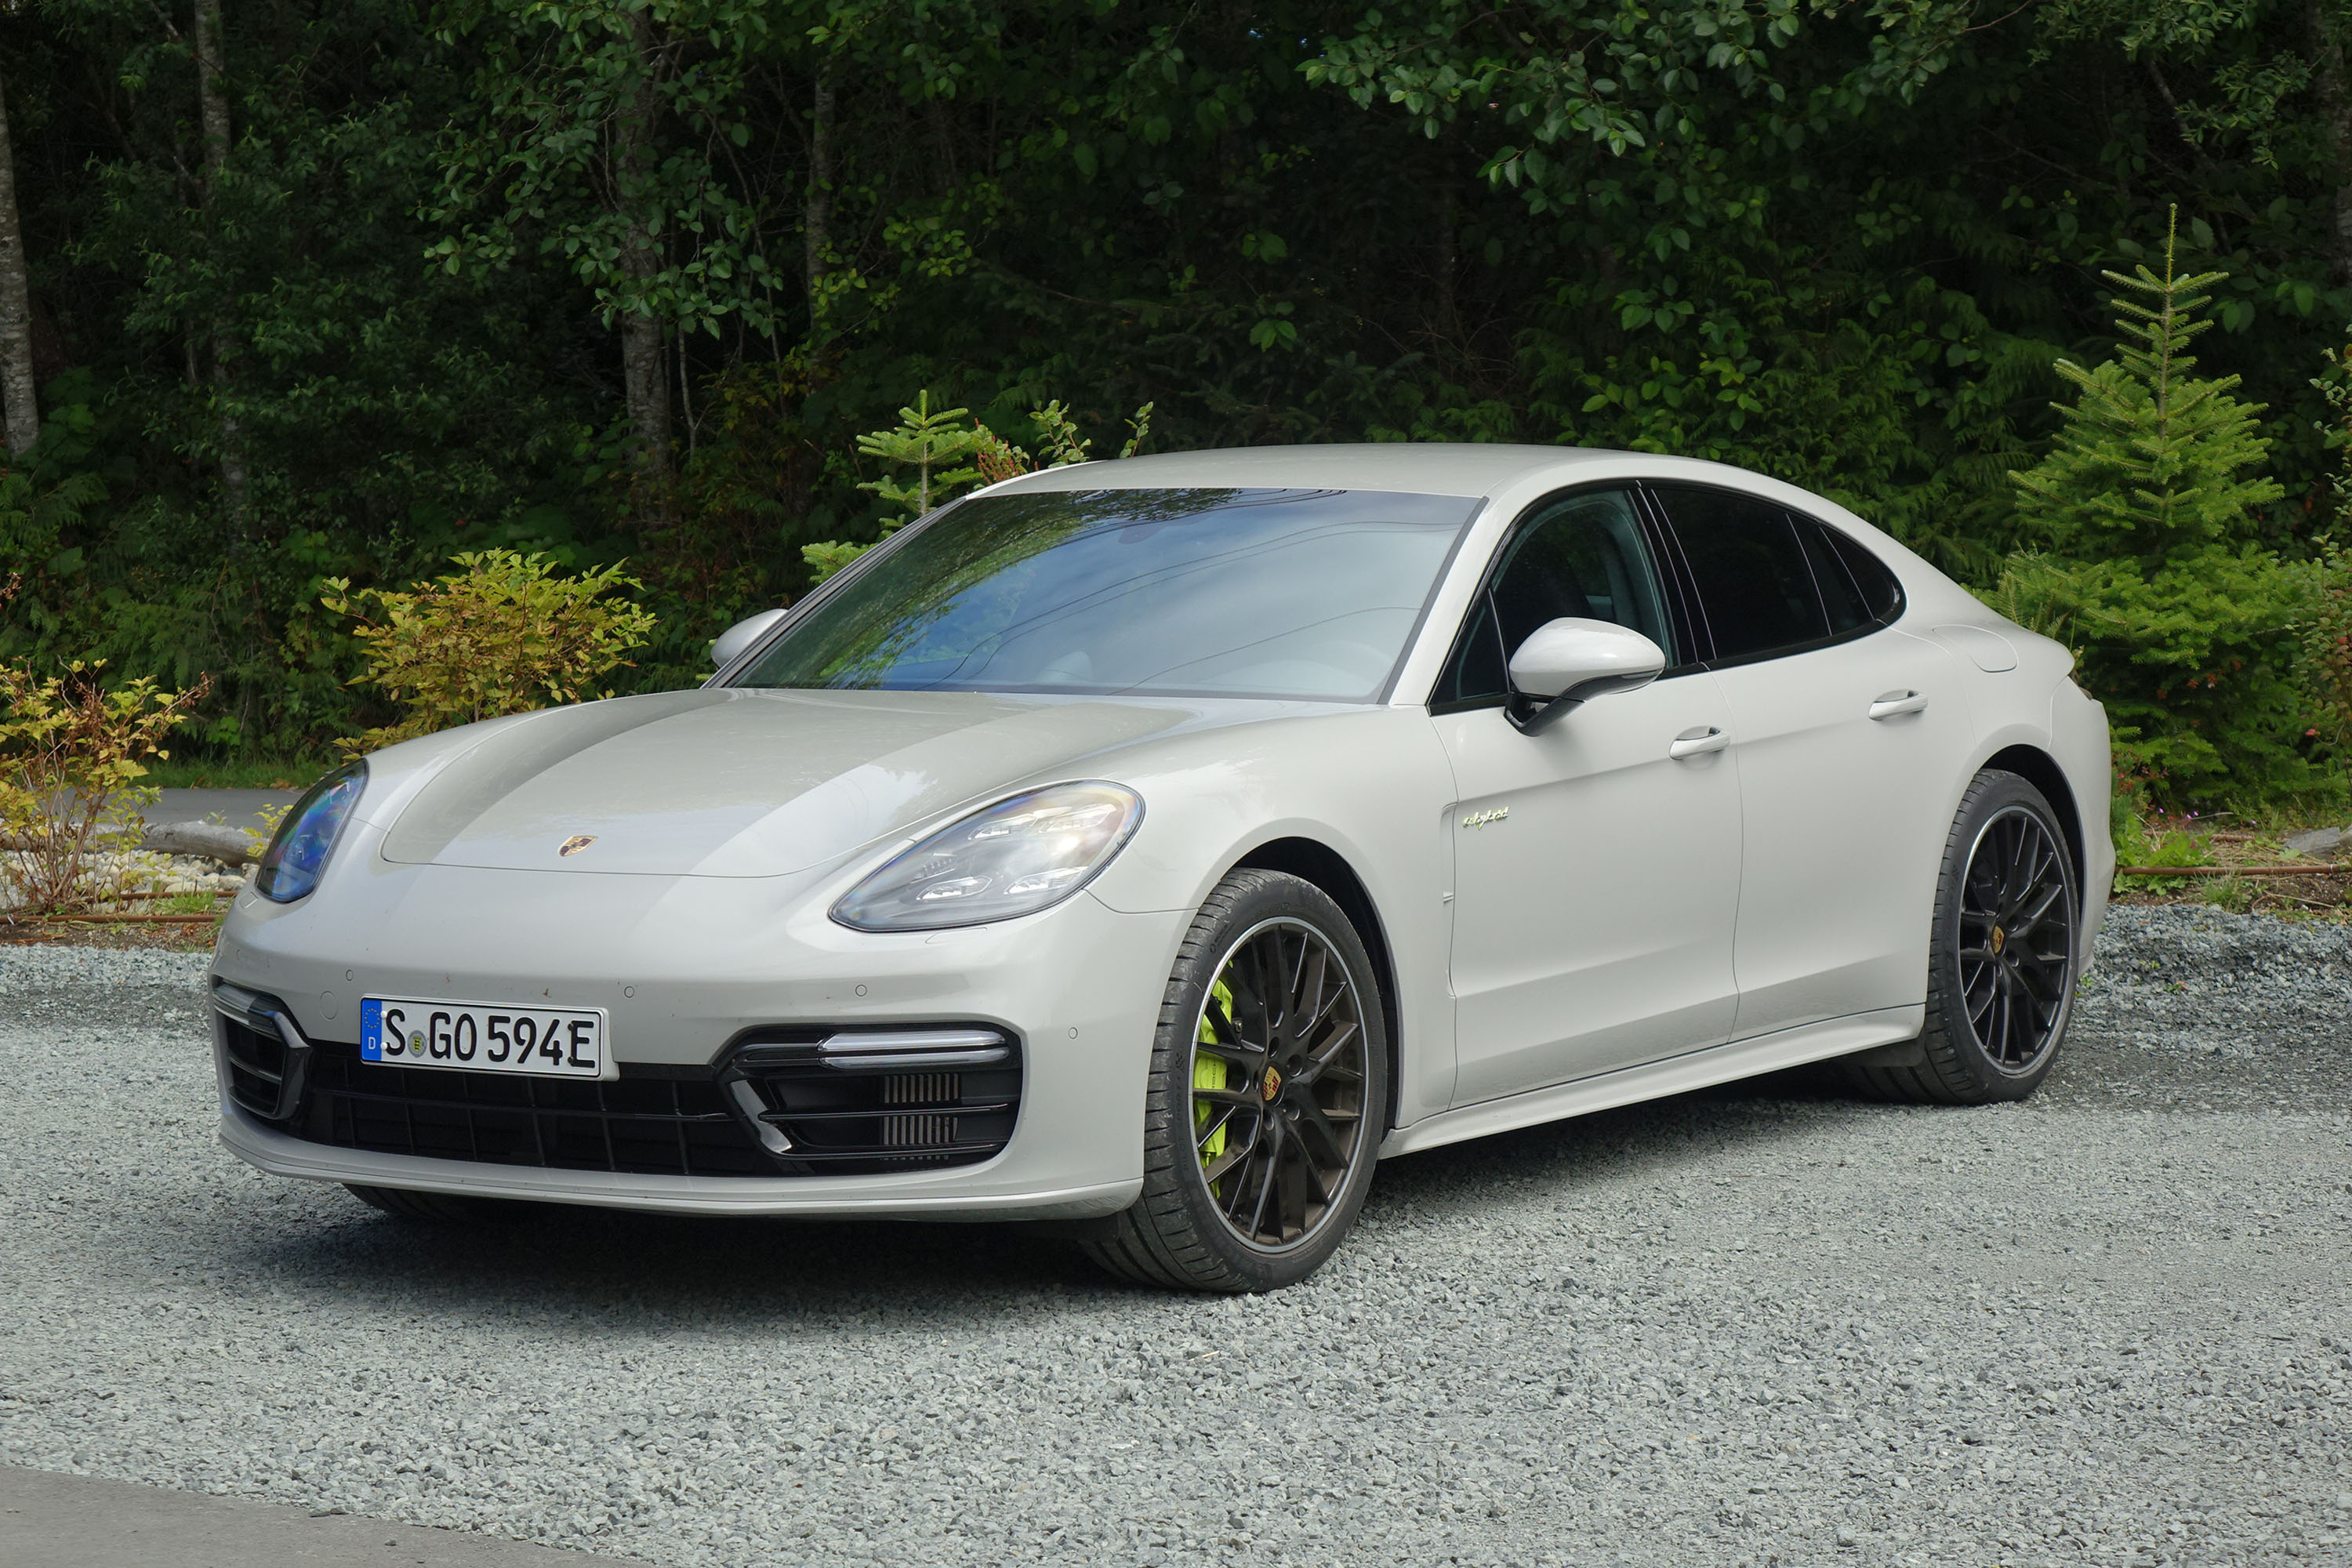 Cars with Turbo for Sale Near Me Awesome Half Of All Porsches Will Plug In by 2025 Showing Importance Of